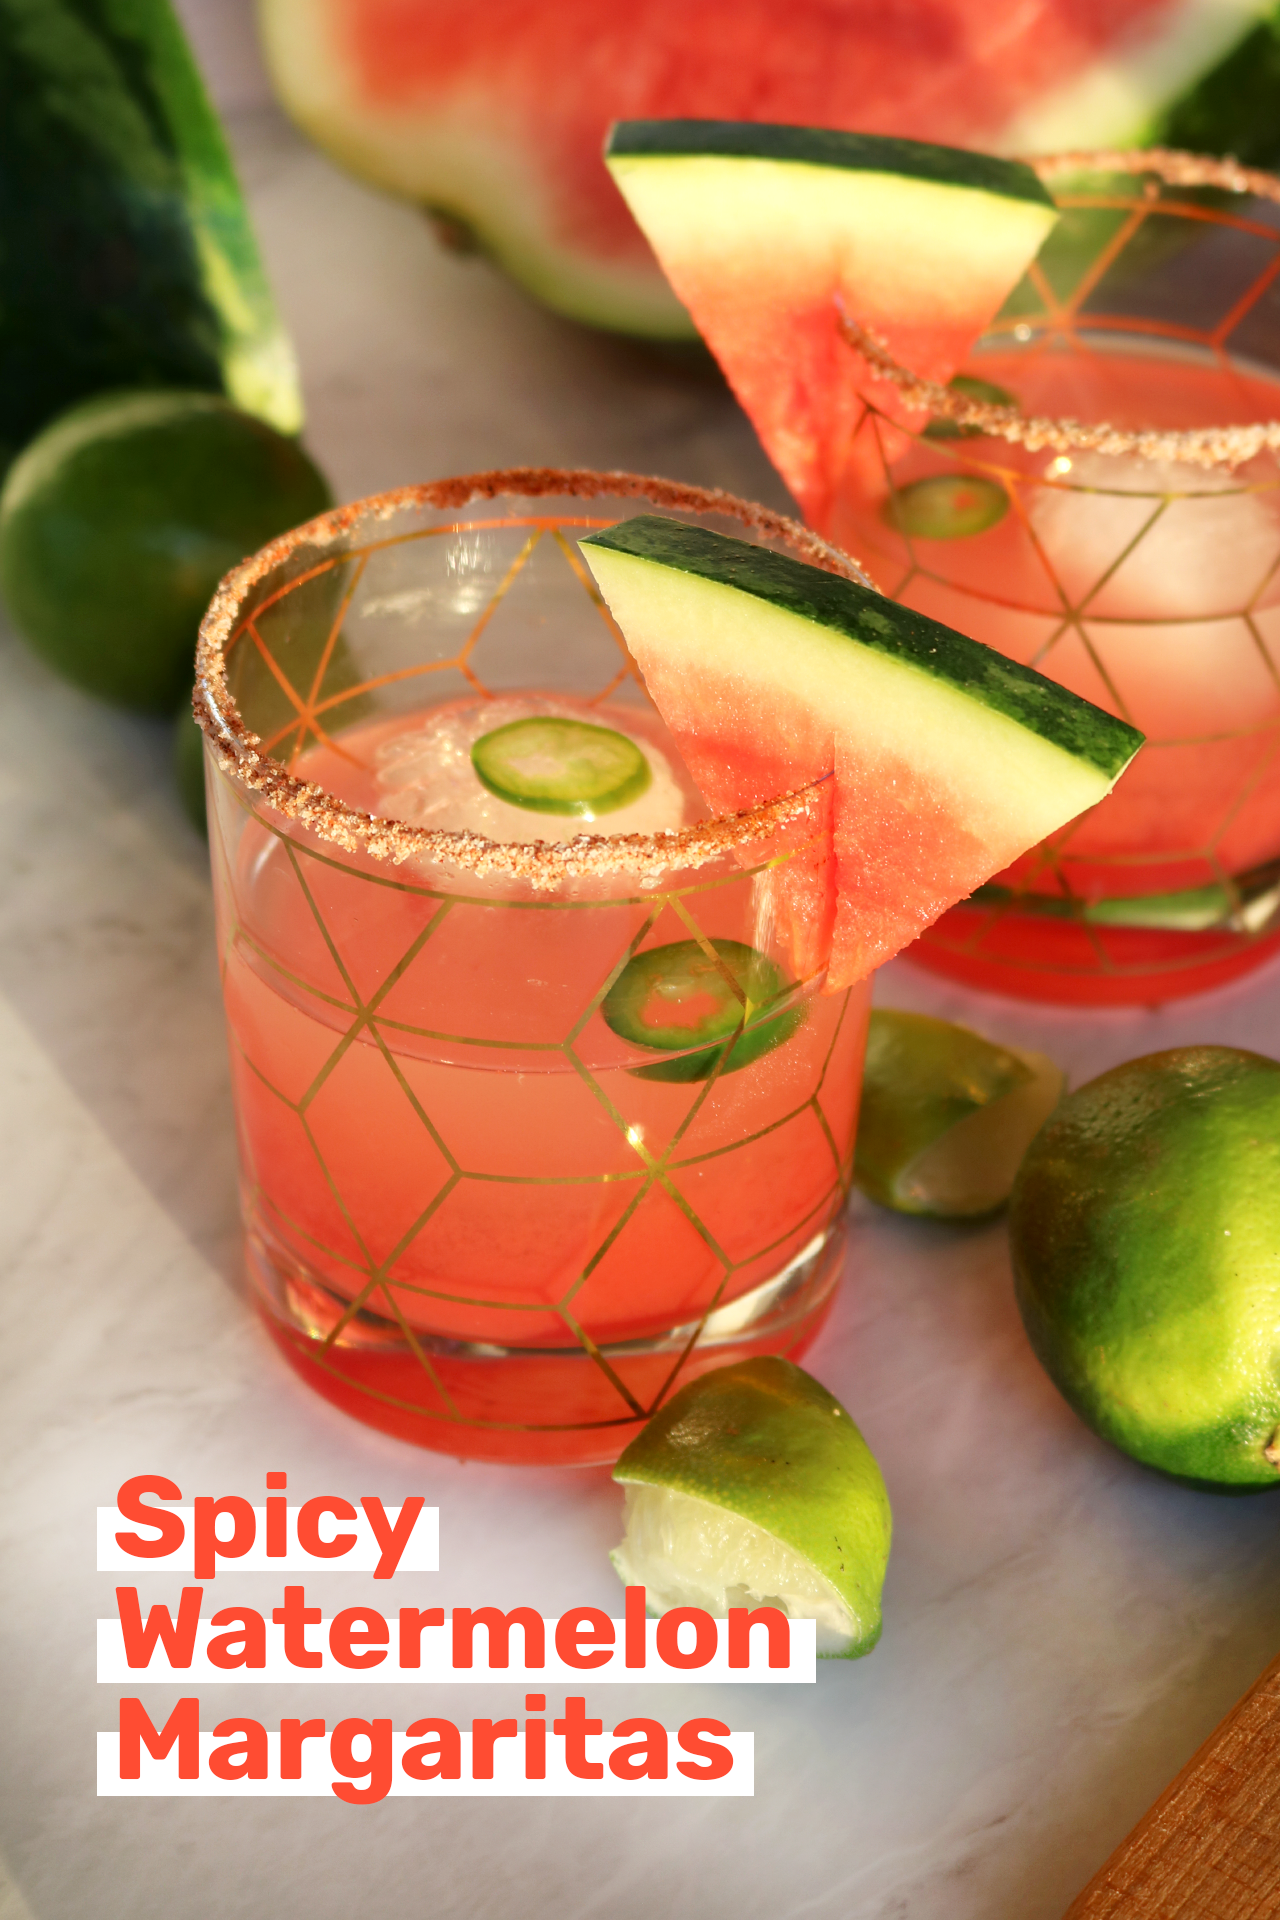 Spicy Watermelon Margaritas | via allspice blog